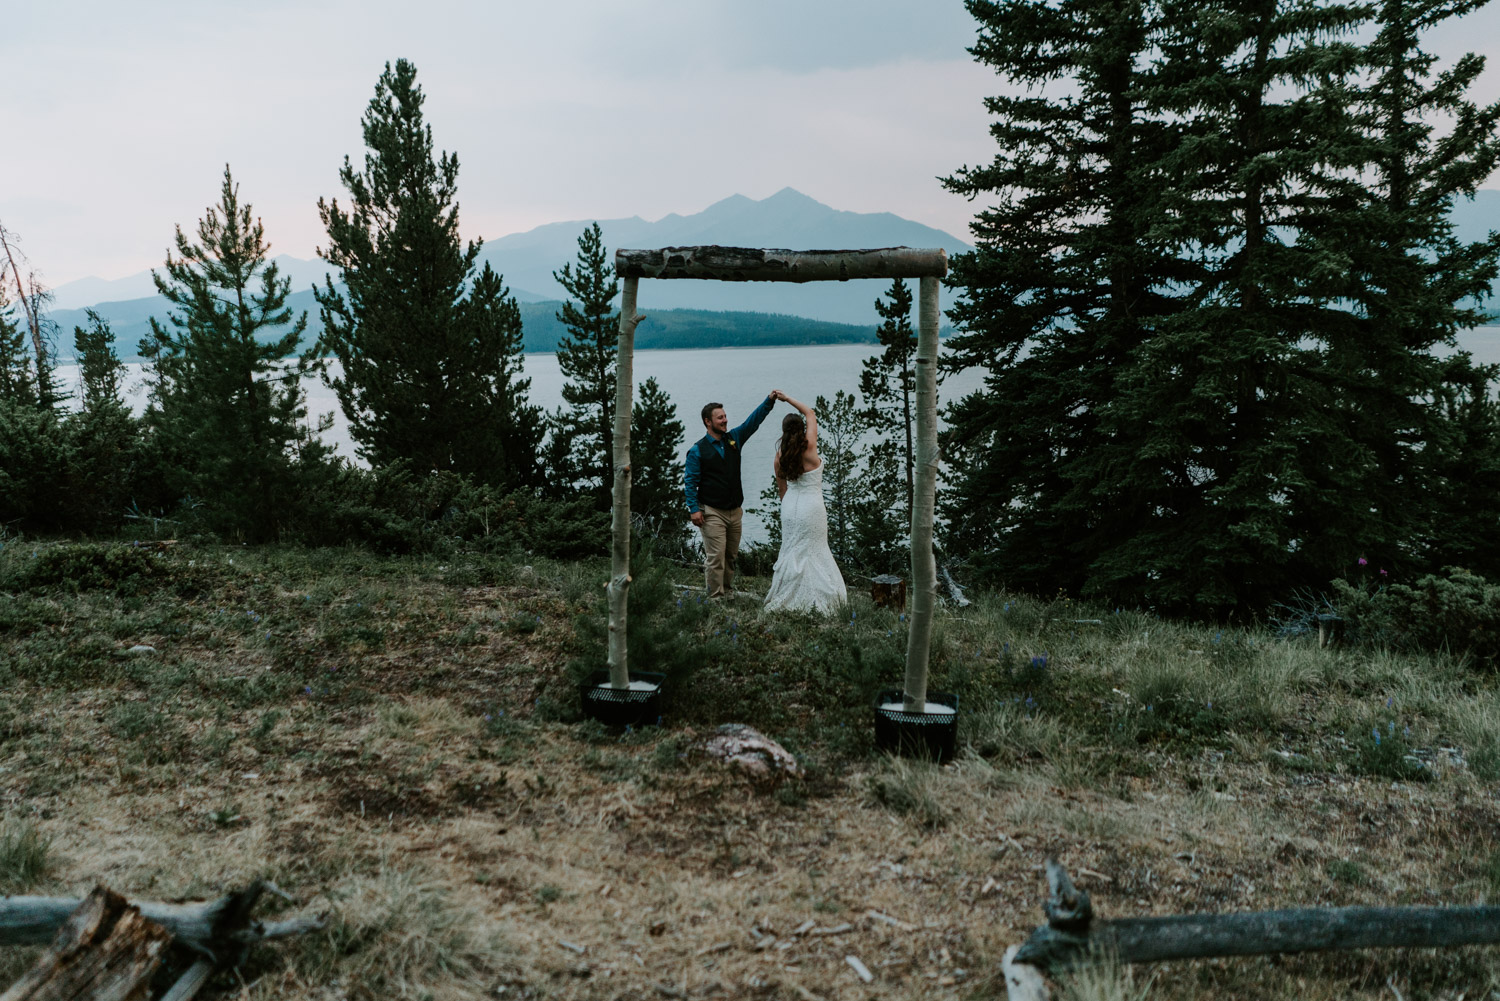 Beth_Jeff_Colorado_Wedding_MegONeillPhotography__180721_131